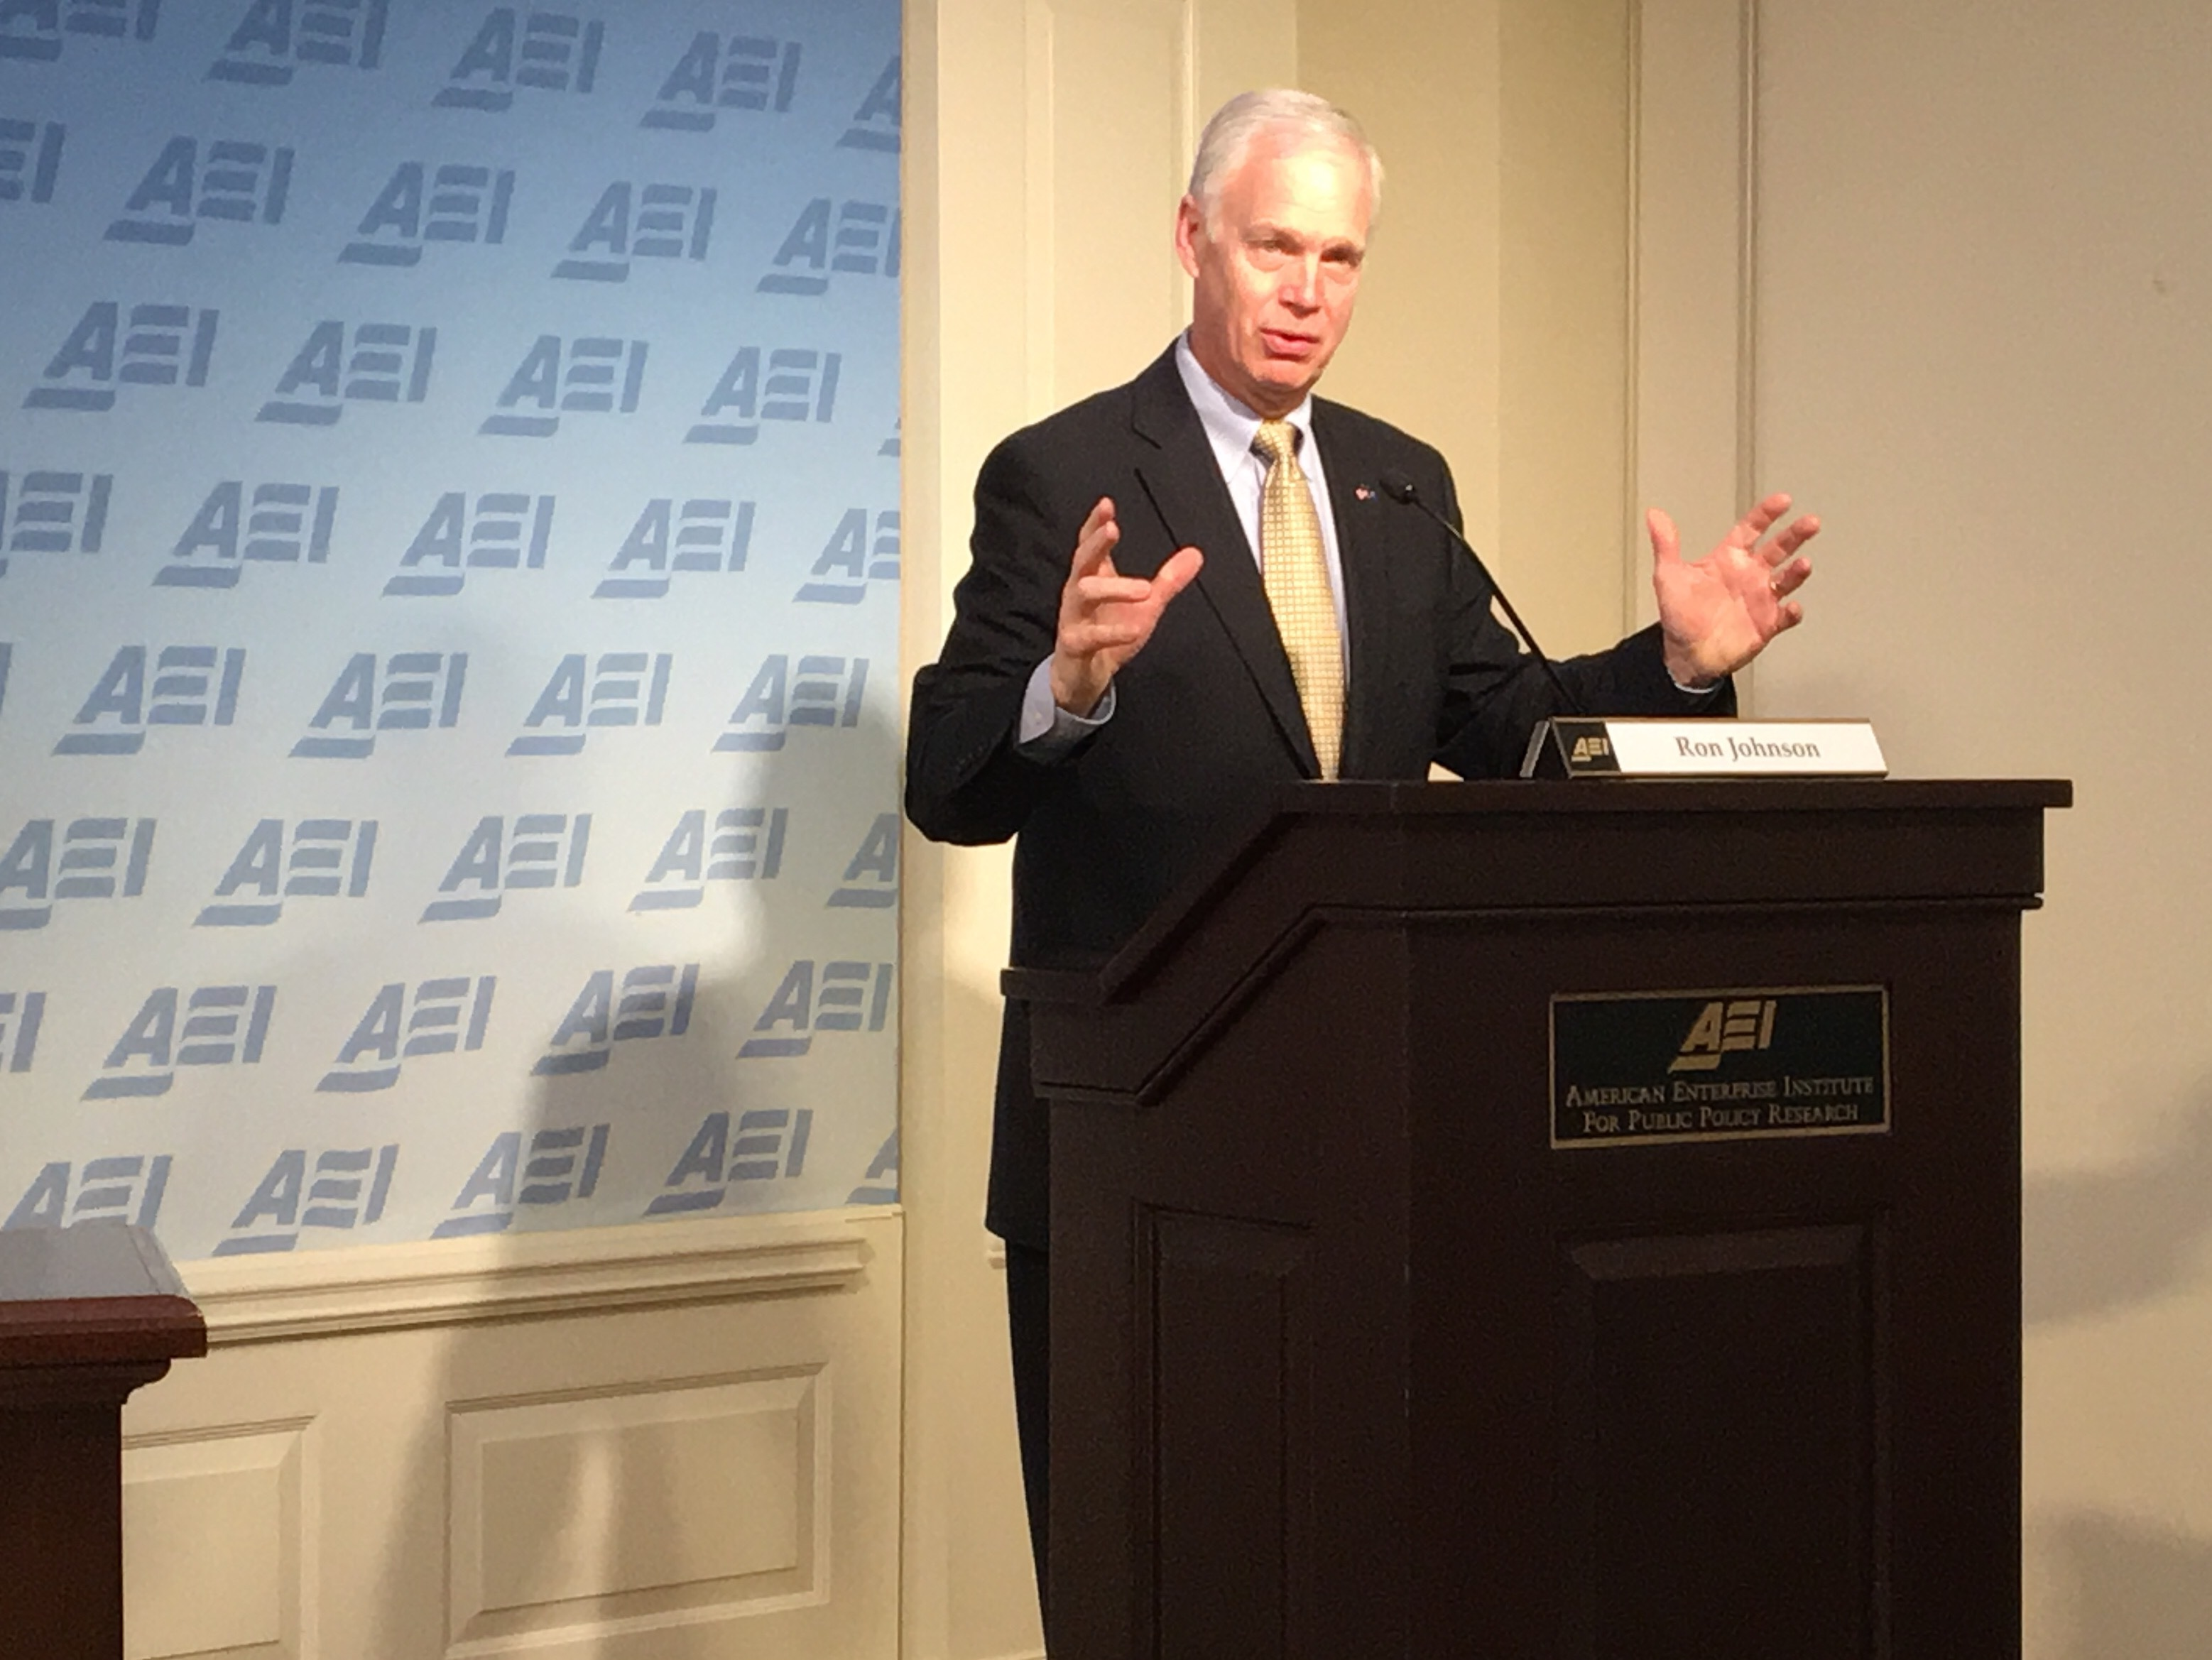 Ron Johnson speaks Thursday at the American Enterprise Institute. (Greg Otto/FedScoop)